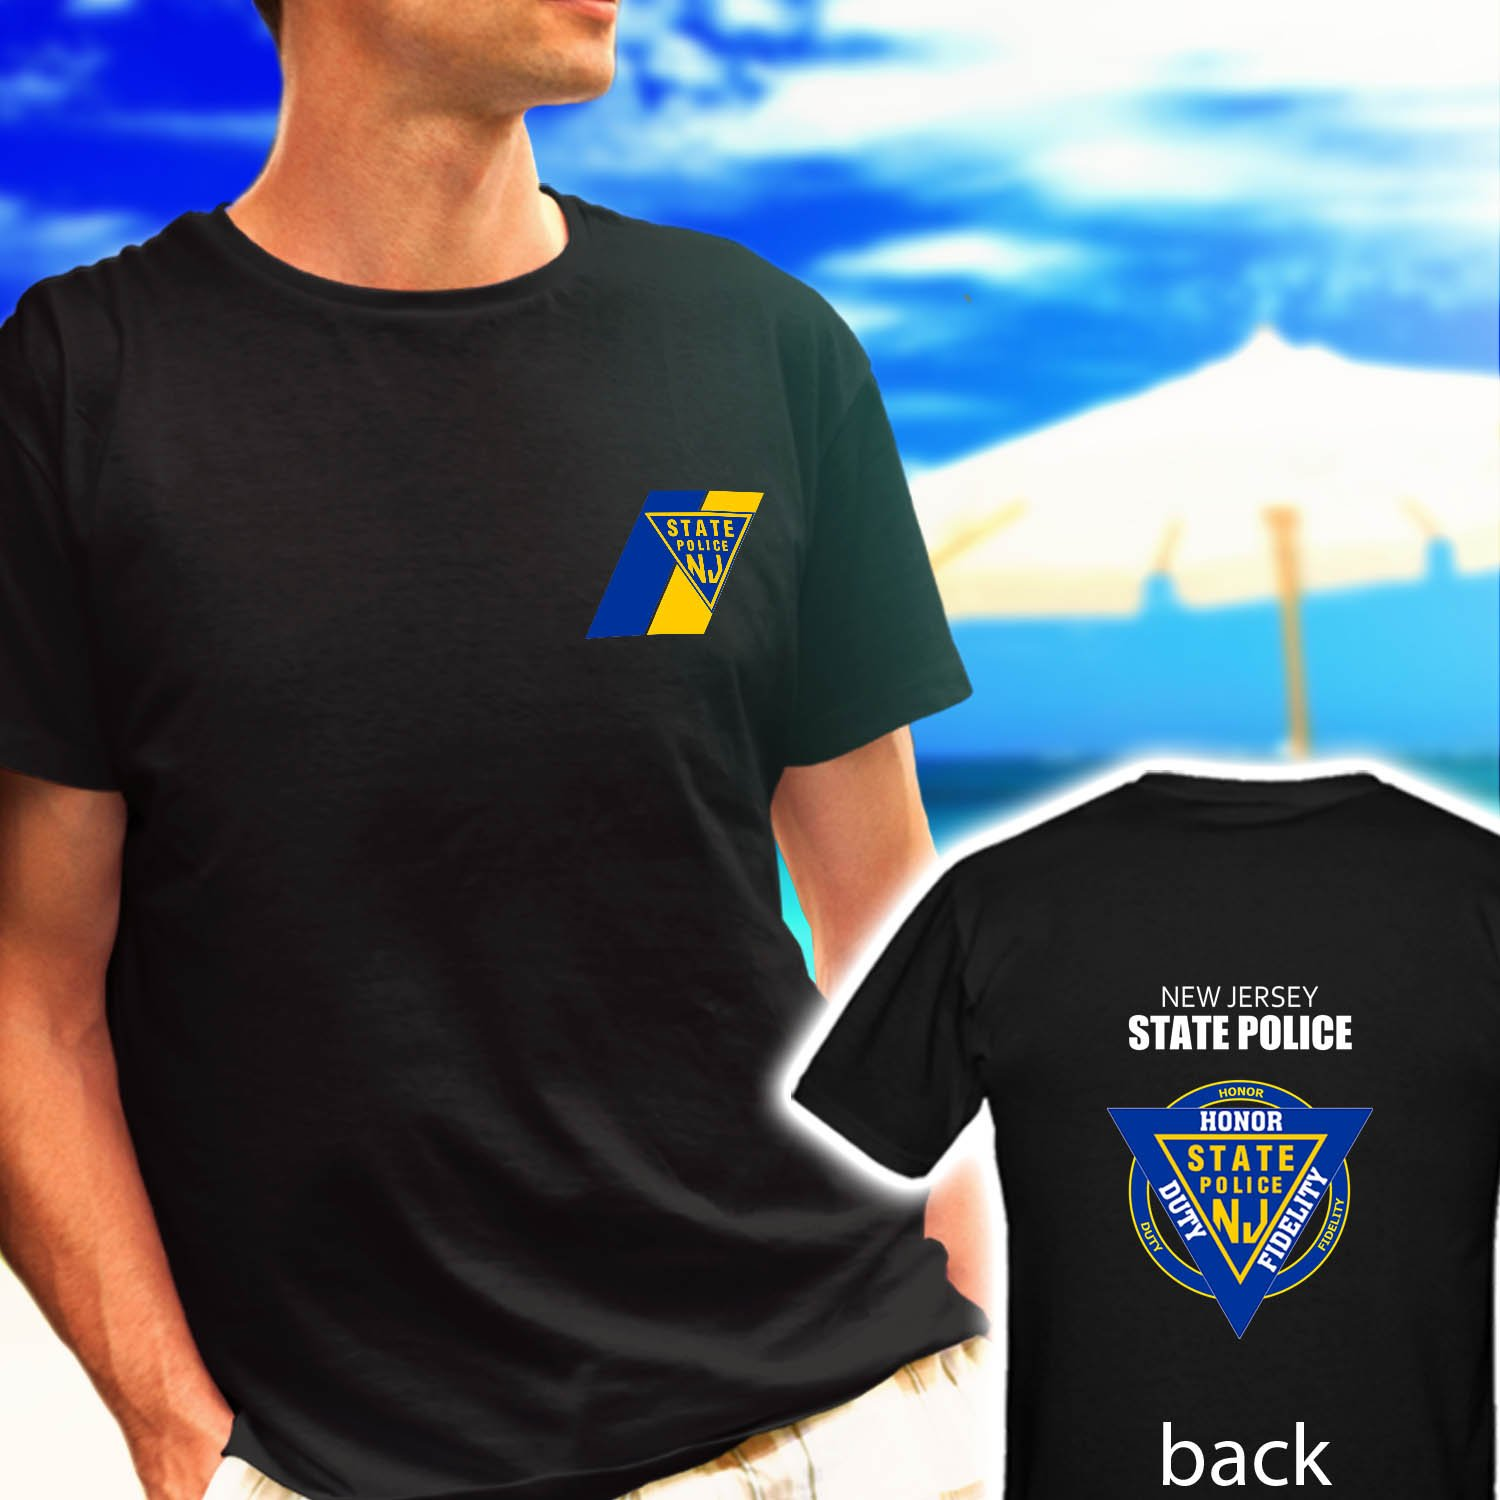 NEW JERSEY STATE POLICE HONOR DUTY FIDELITY black t-shirt tshirt shirts tee SIZE S